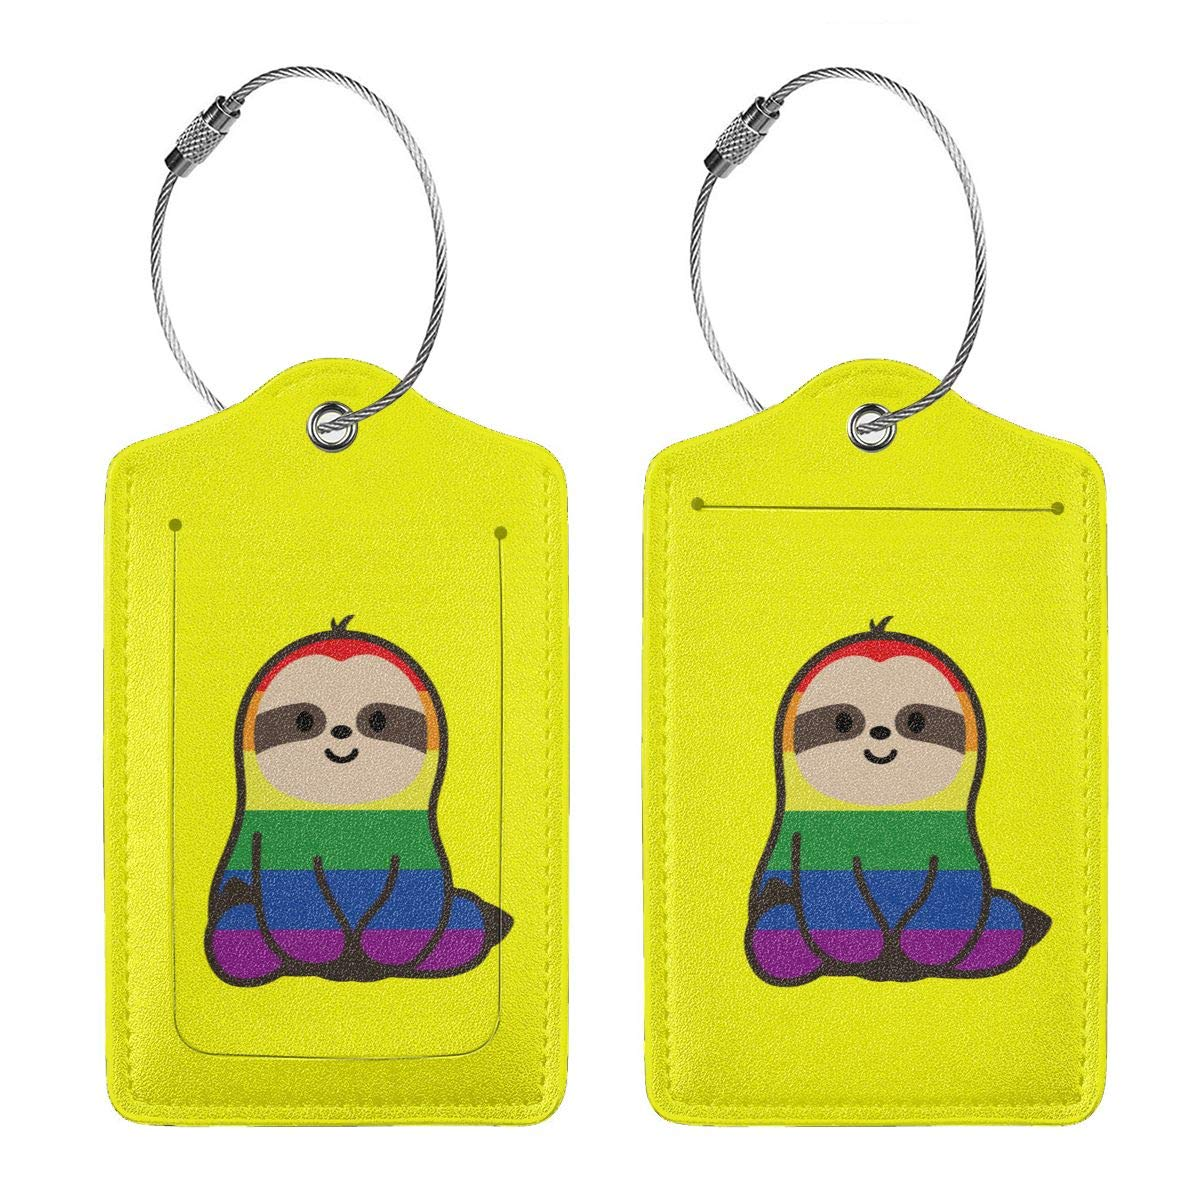 Cute Cartoon Sloths Leather Luggage Tags Suitcase Tag Travel Bag Labels With Privacy Cover For Men Women 2 Pack 4 Pack